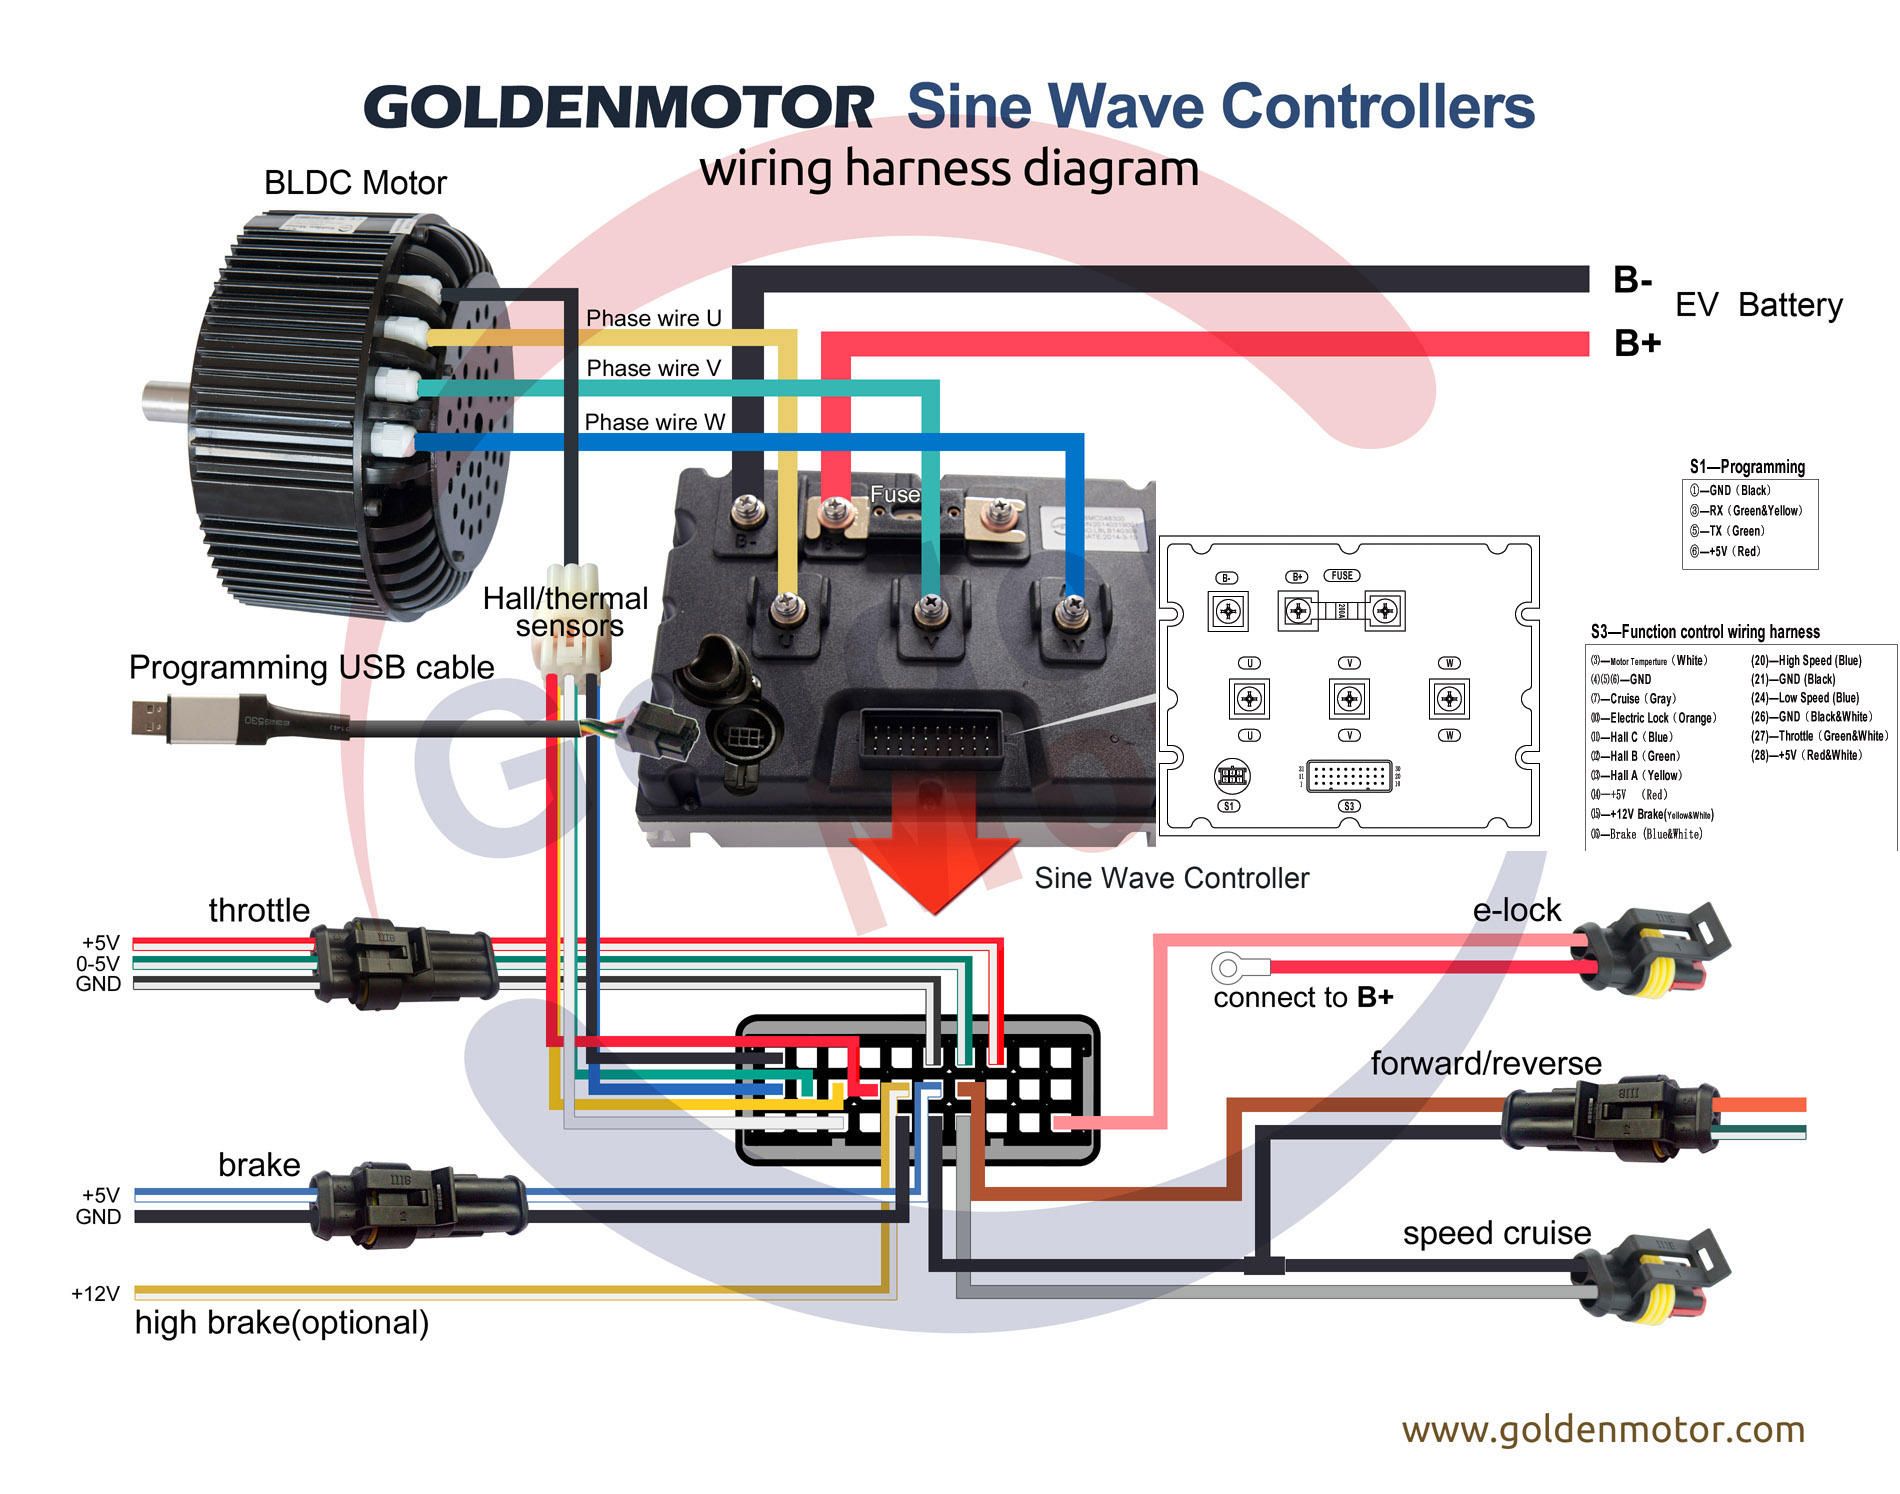 electric car electric trike electric car motor electric car kit rh goldenmotor com electric car engine schematics Worldwide Electric Motor Wiring Diagram